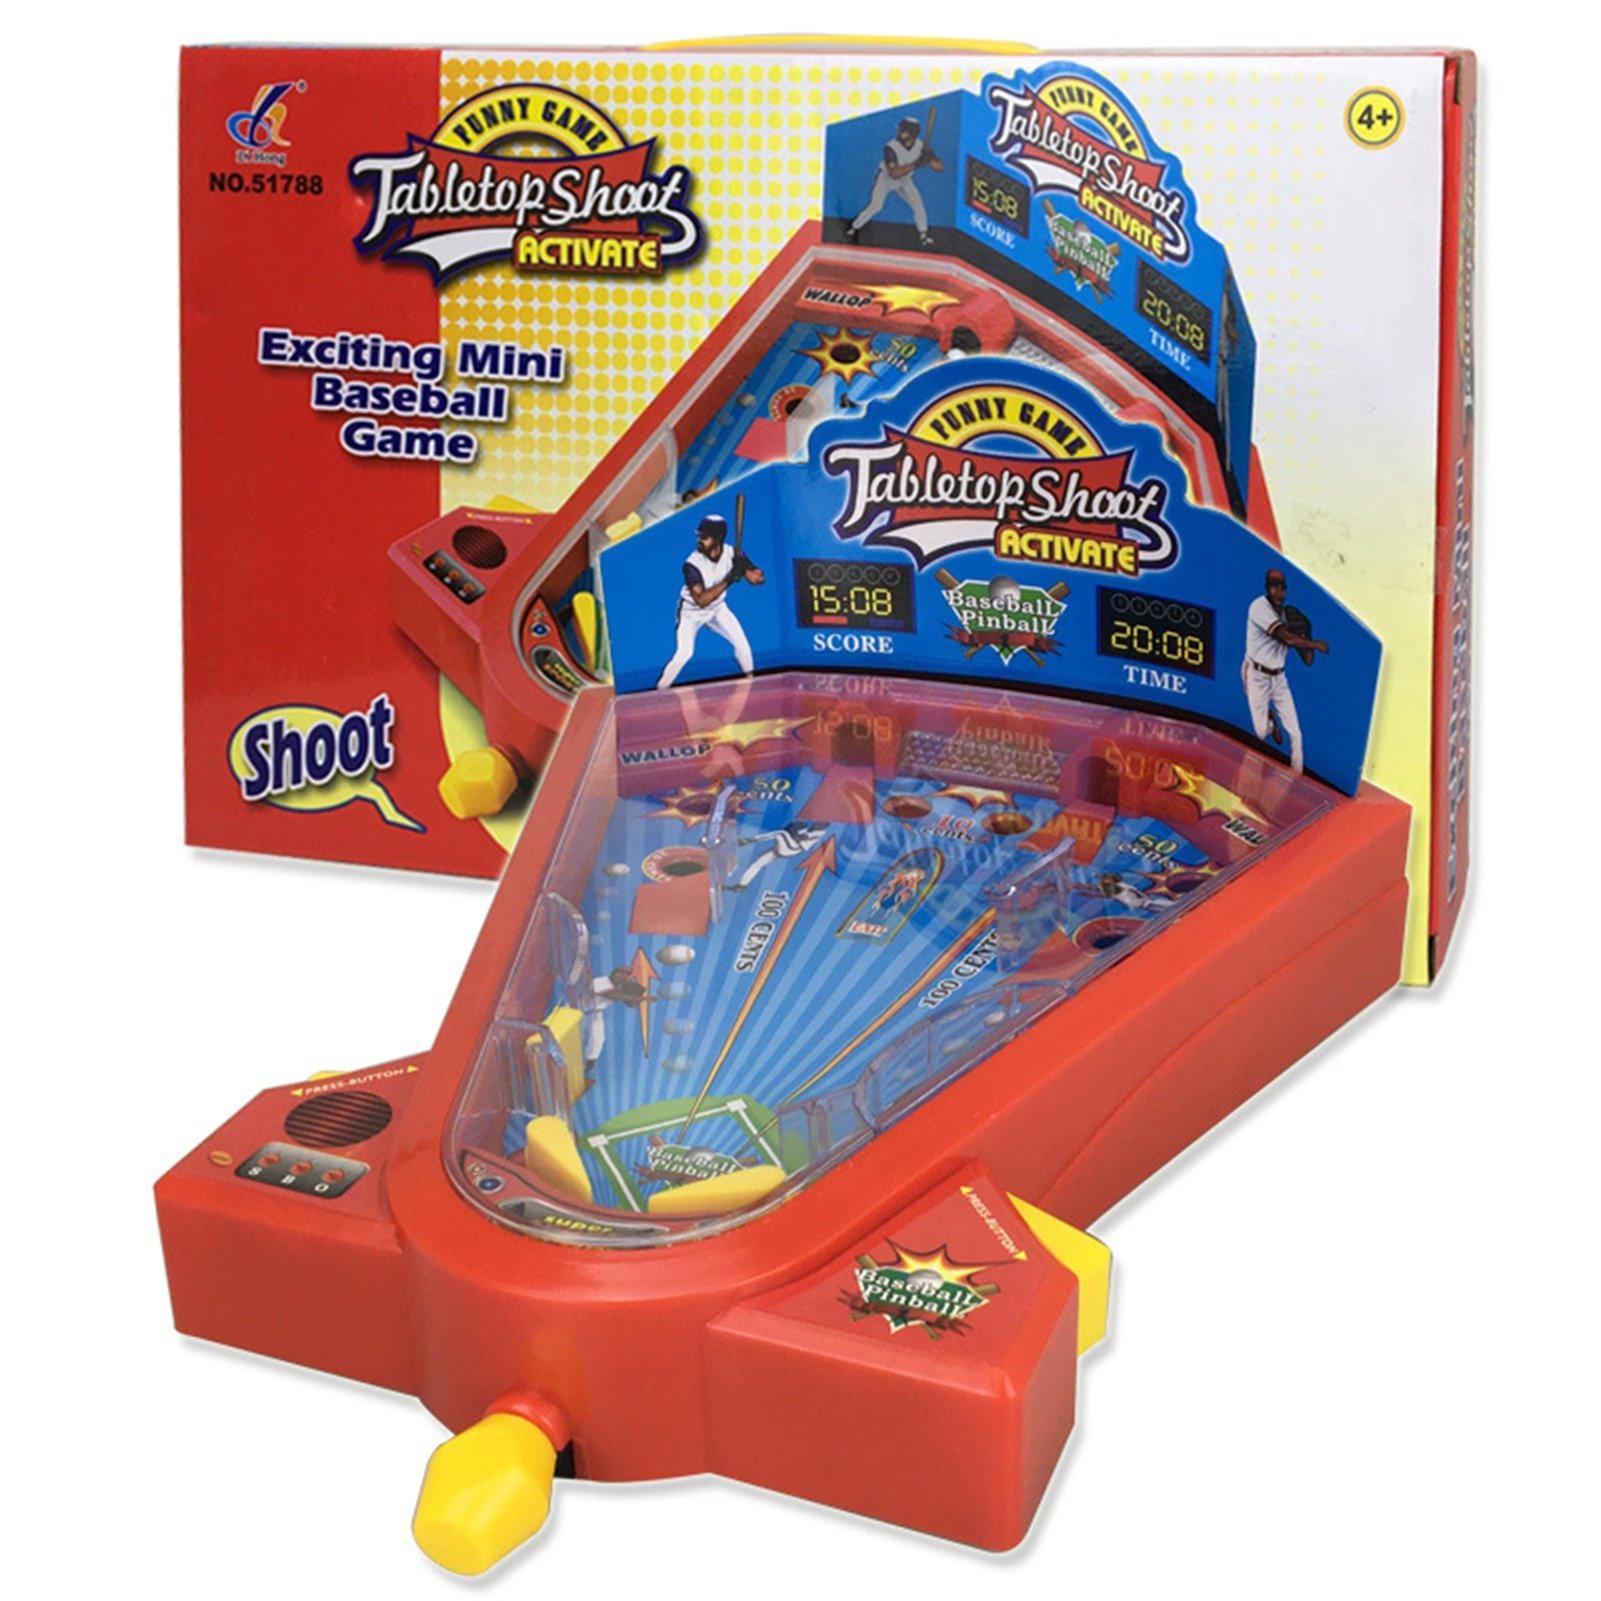 Фото - Children's Desktop Baseball Toy Mini Safe Educational Family Board Match Game For Parent-child Fun Interaction 2021 novelty kids bean bag toss game toys outdoor dart board game game toy set fun parent child interaction educational game